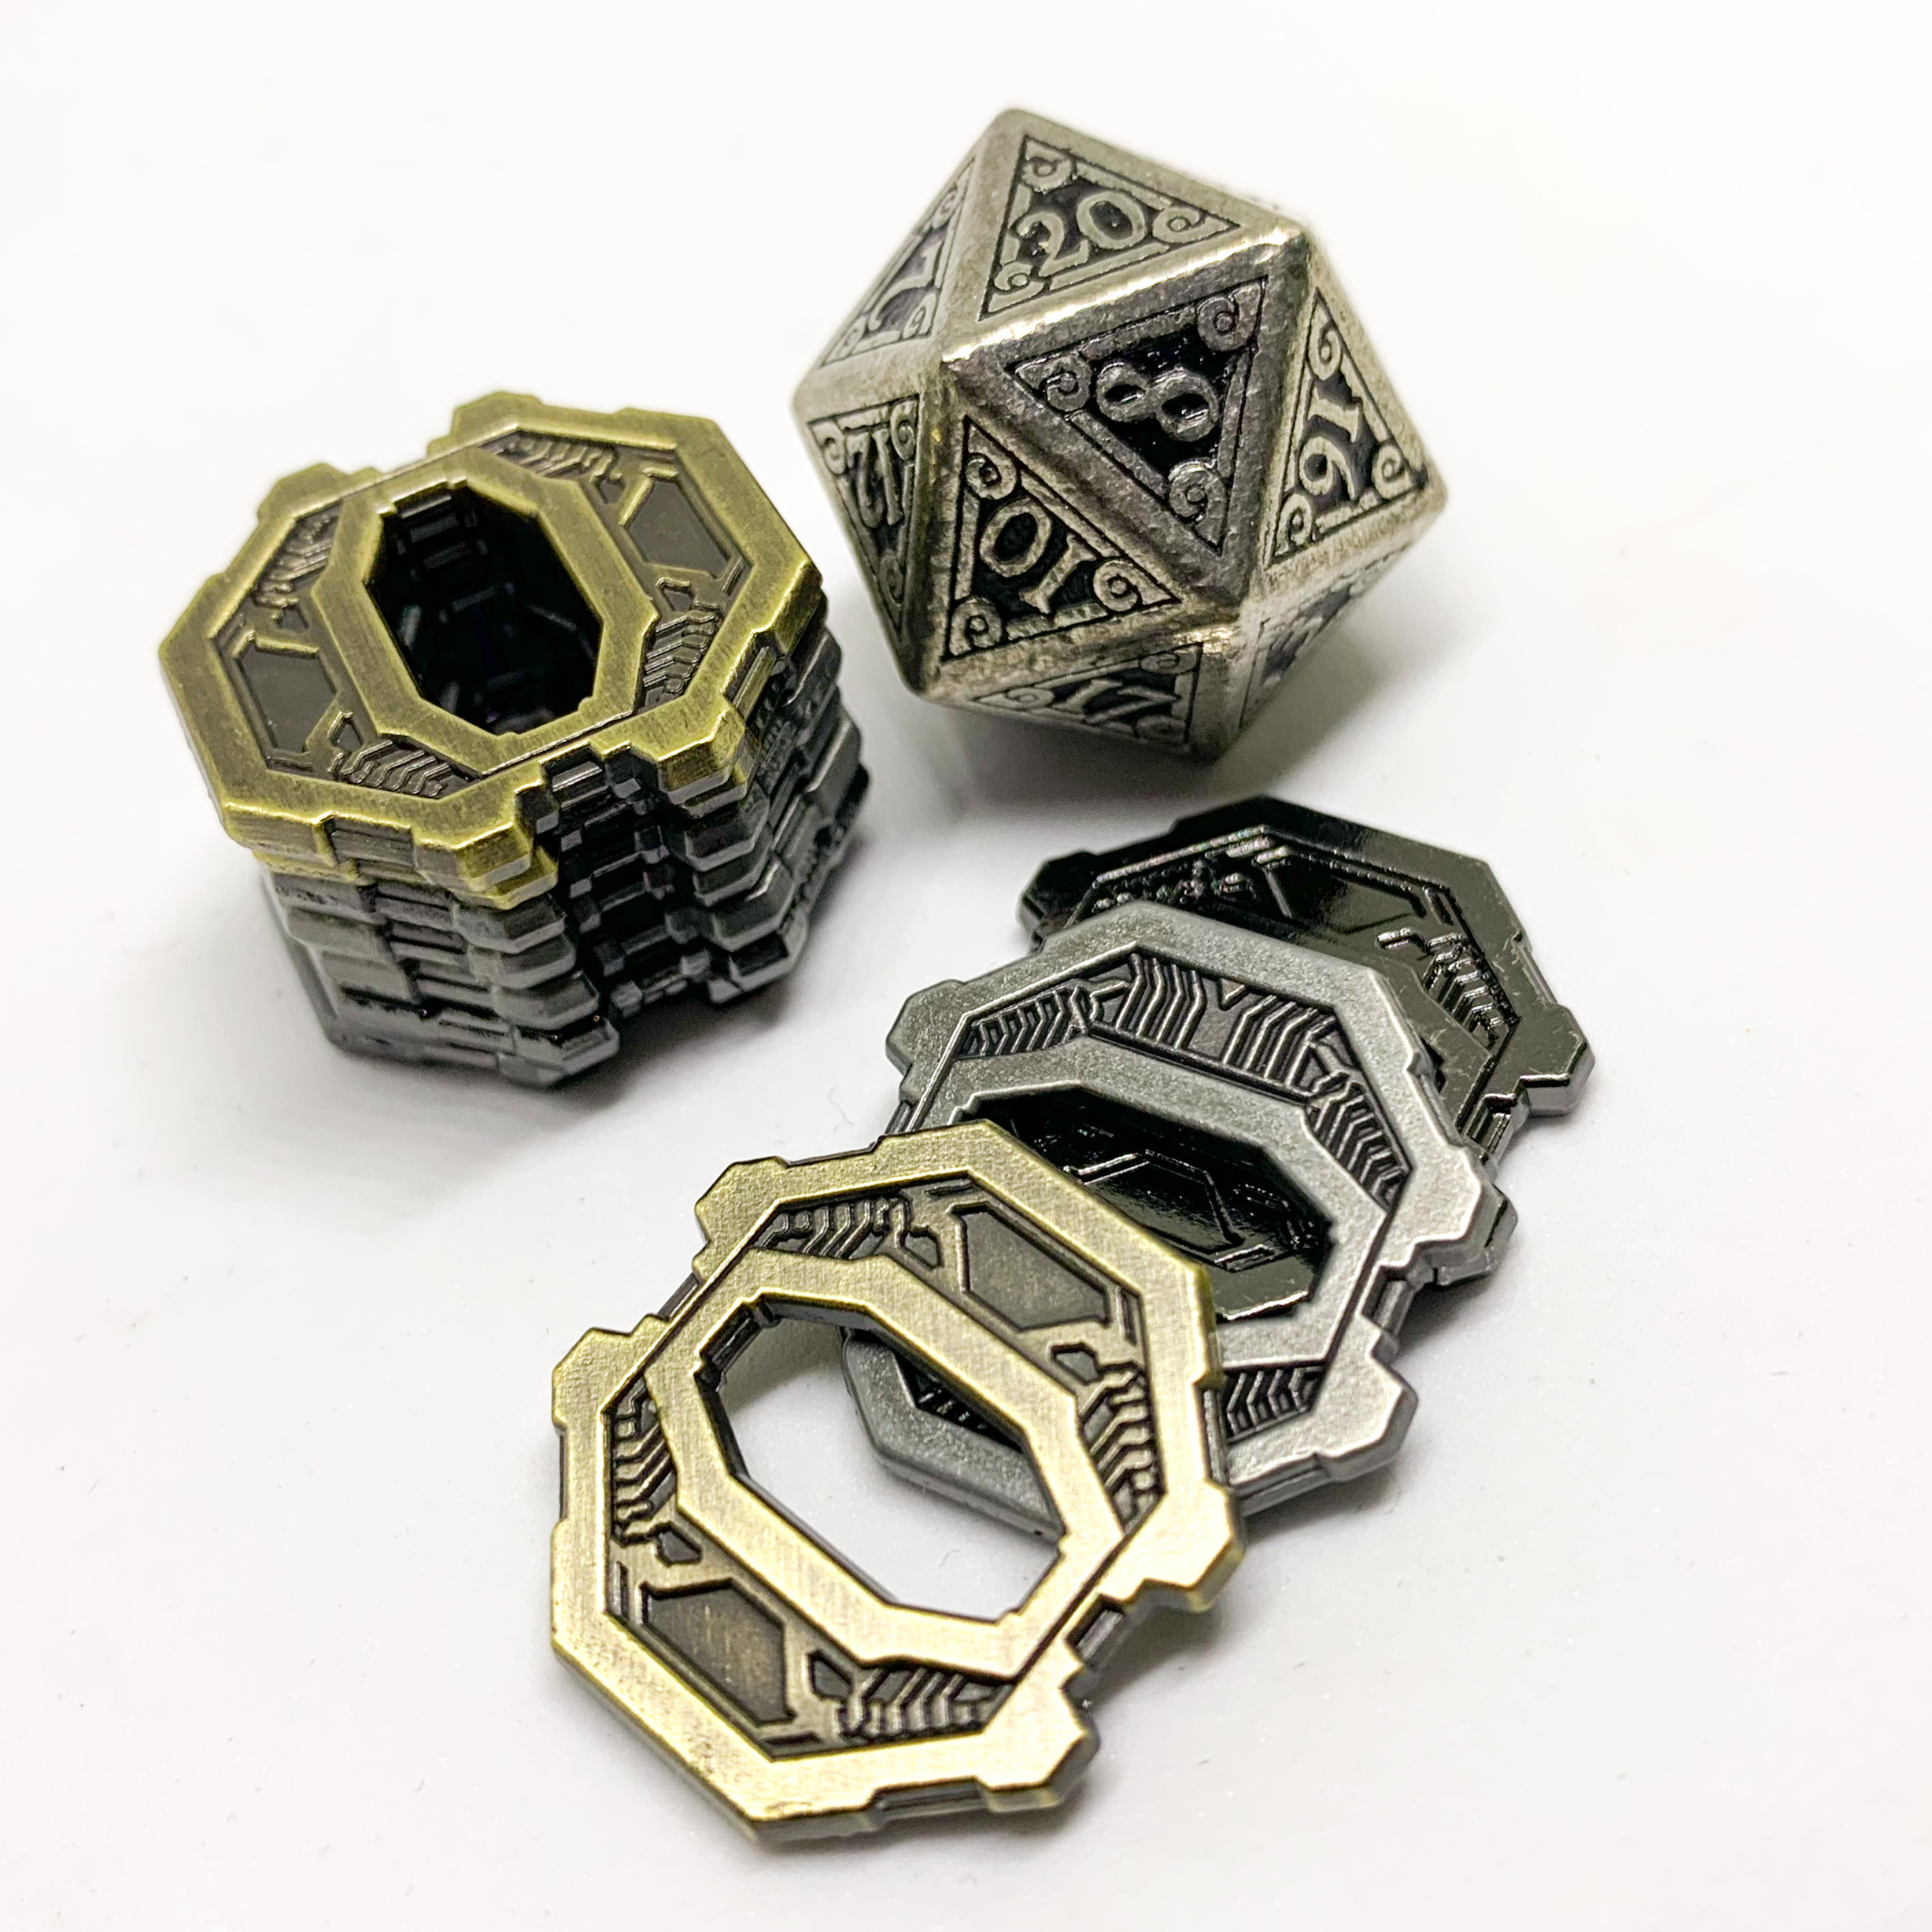 Campaign Coins - Numenera Shims type 2Campaign Coins - Numenera Shims type 2